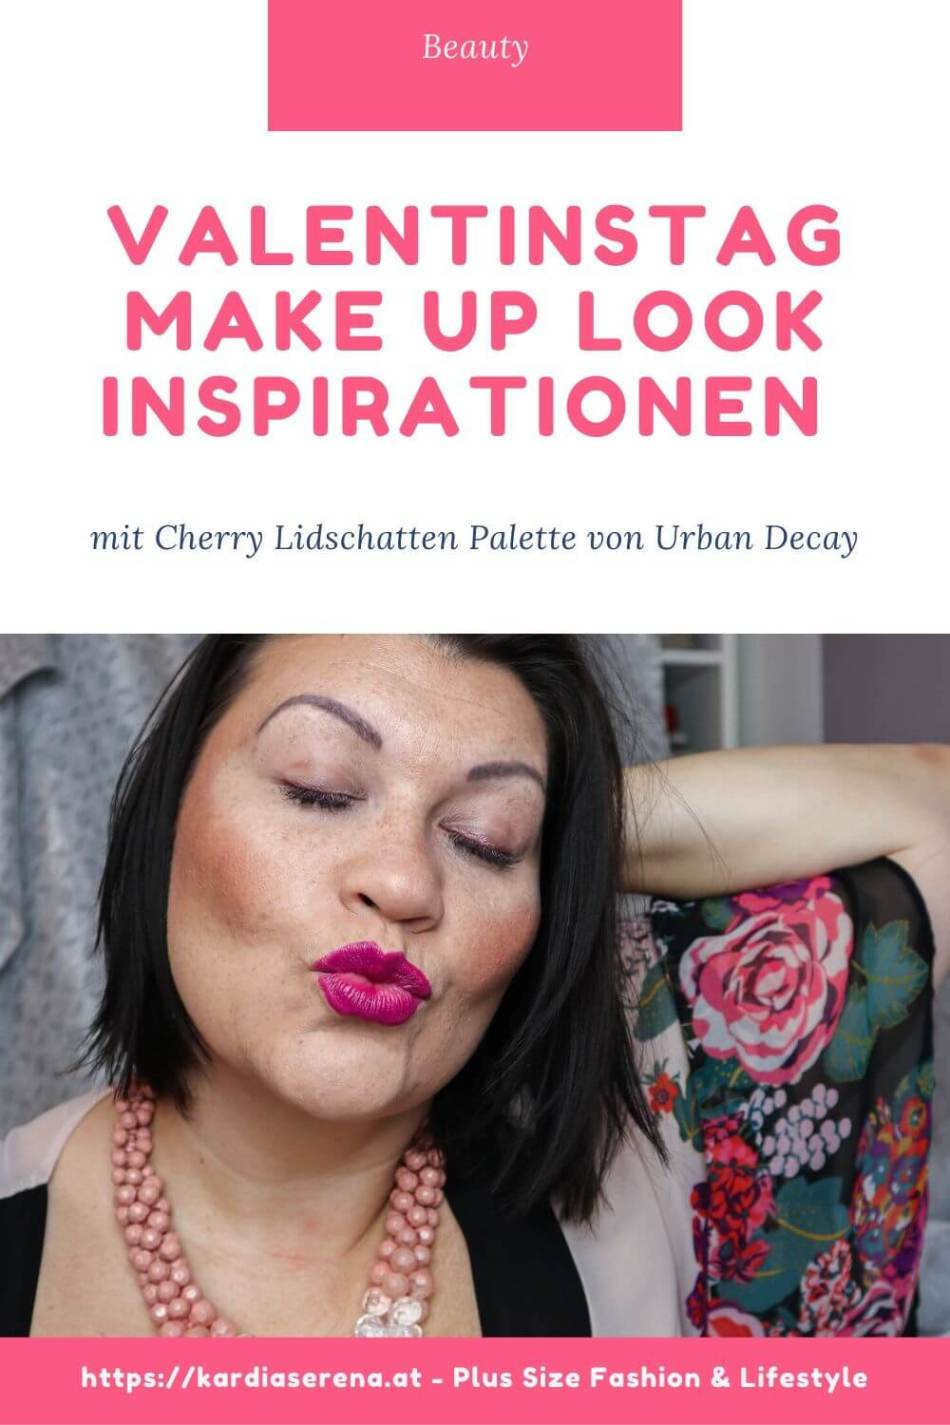 Valentinstag Make Up Look Inspirationen mit Urban Decay Cherry Palette kardiaserena